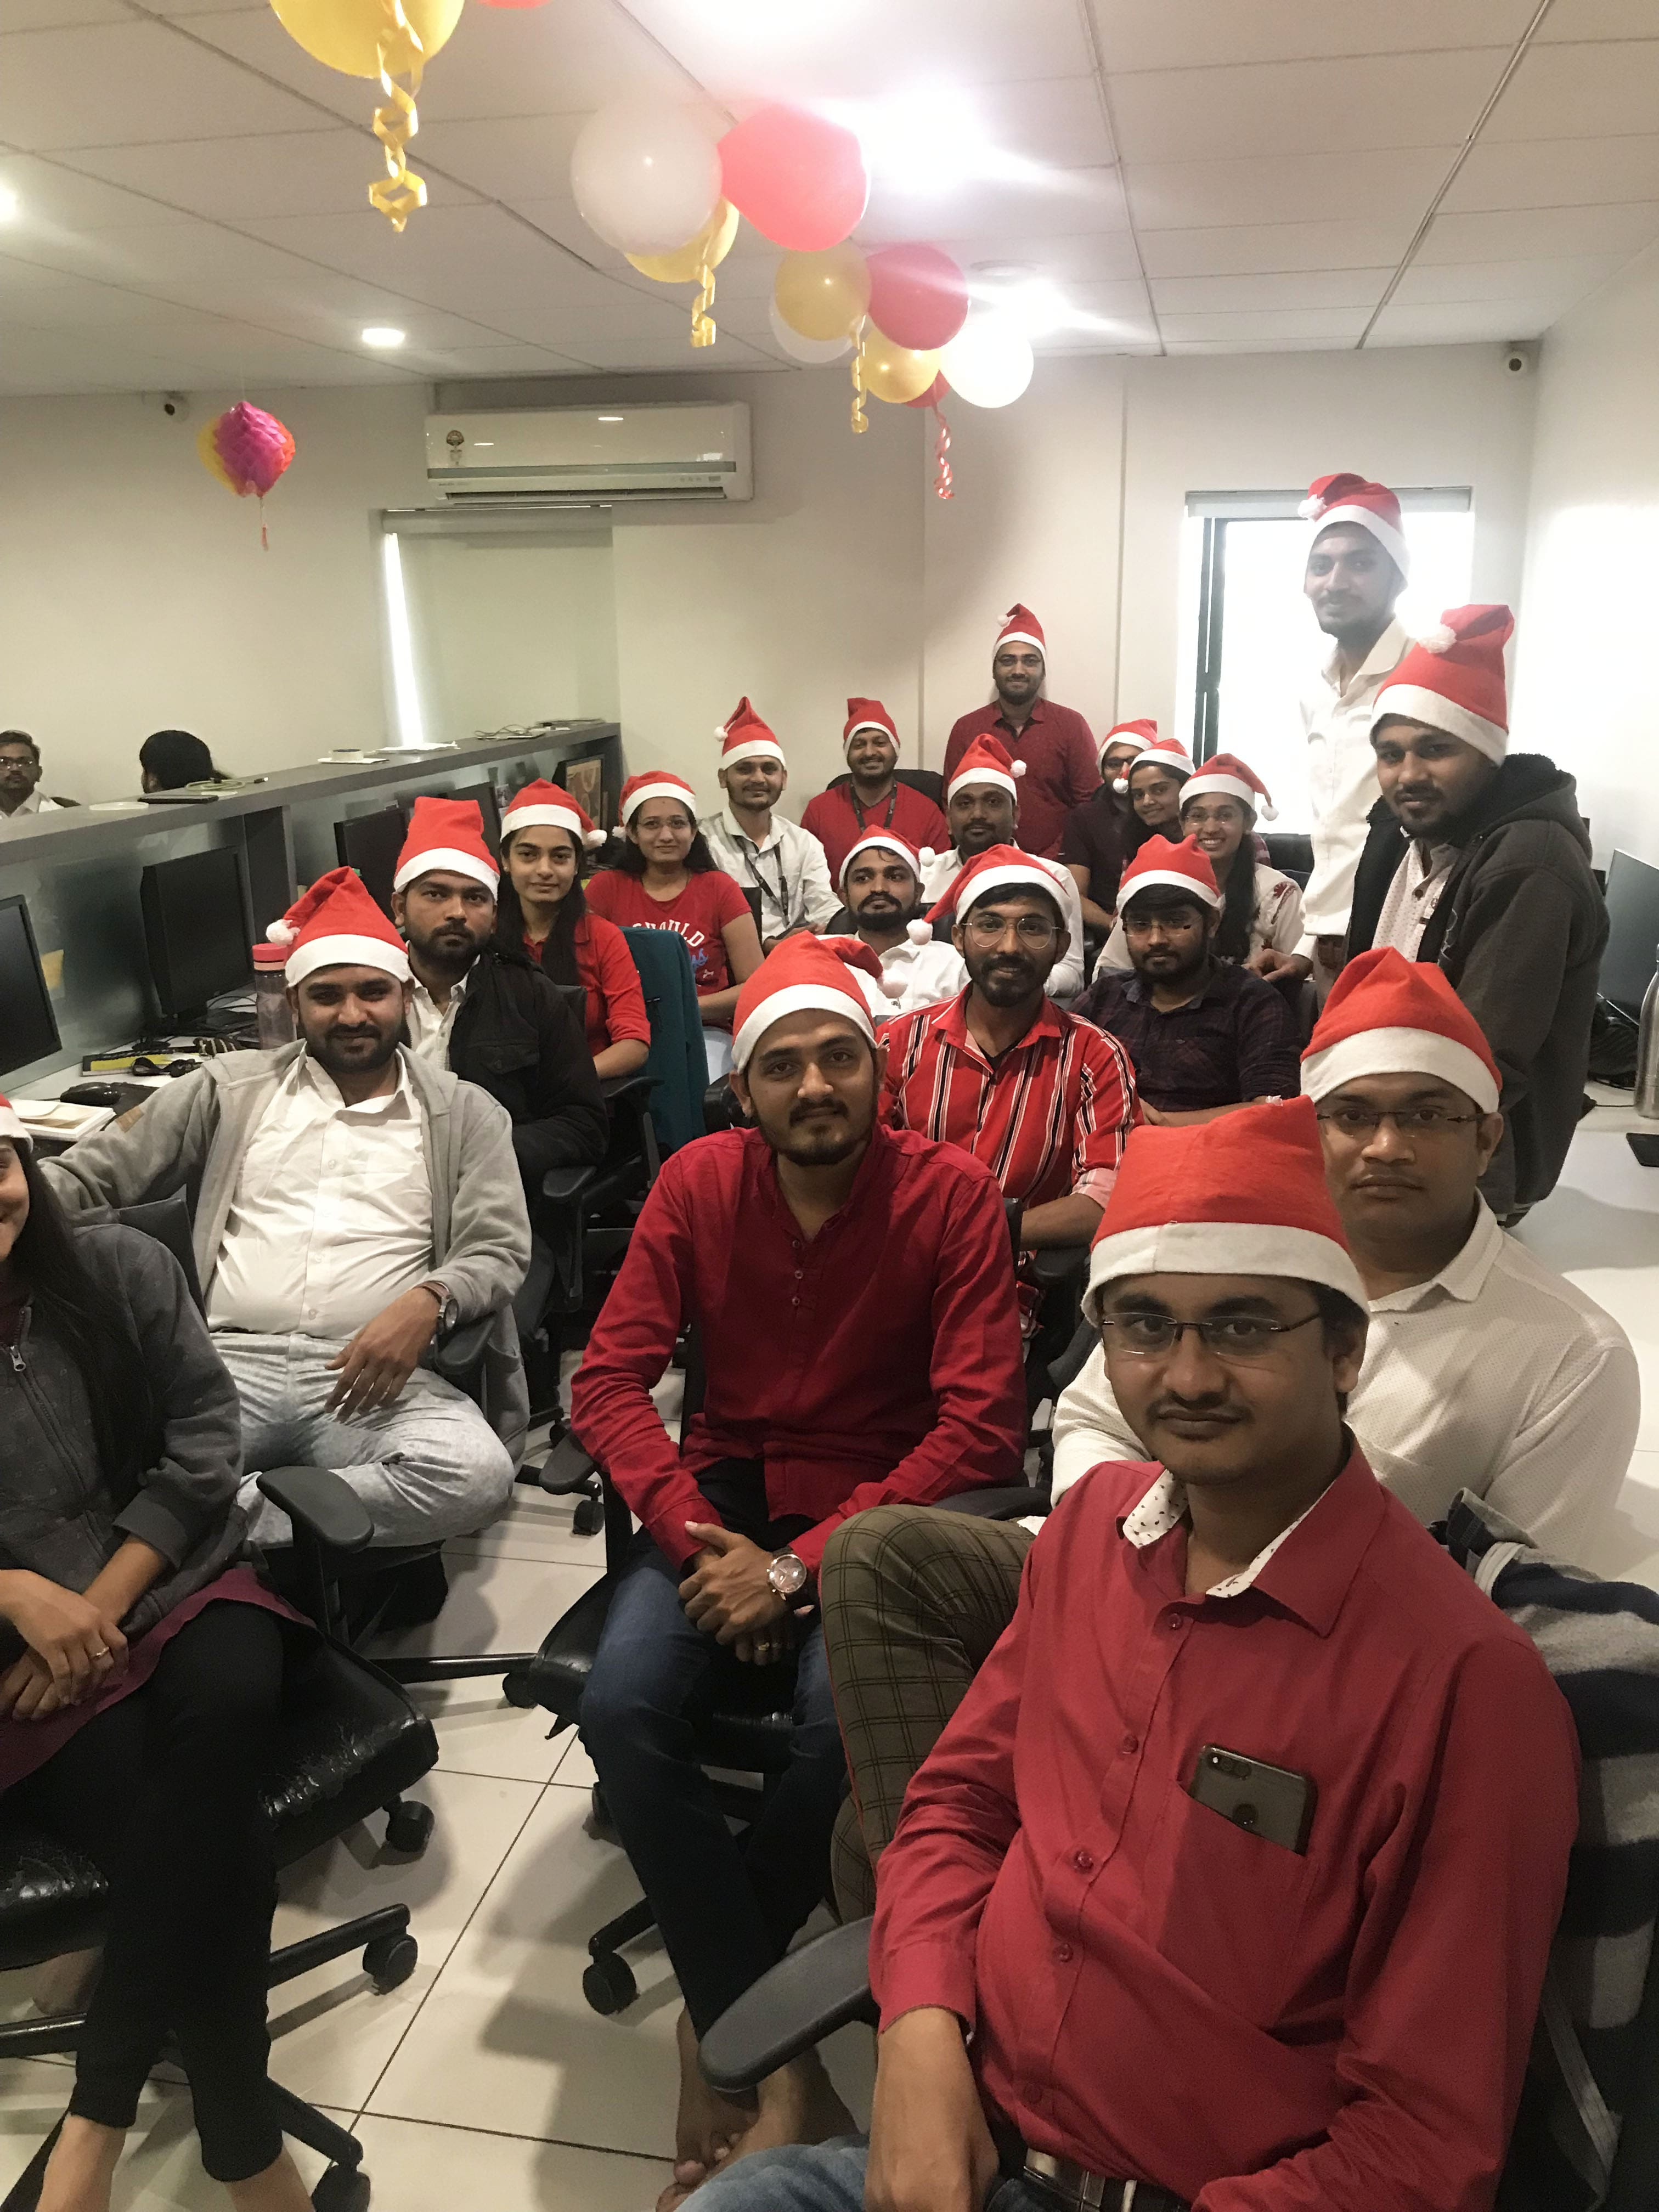 XMas Celebrations at Logistic Infotech